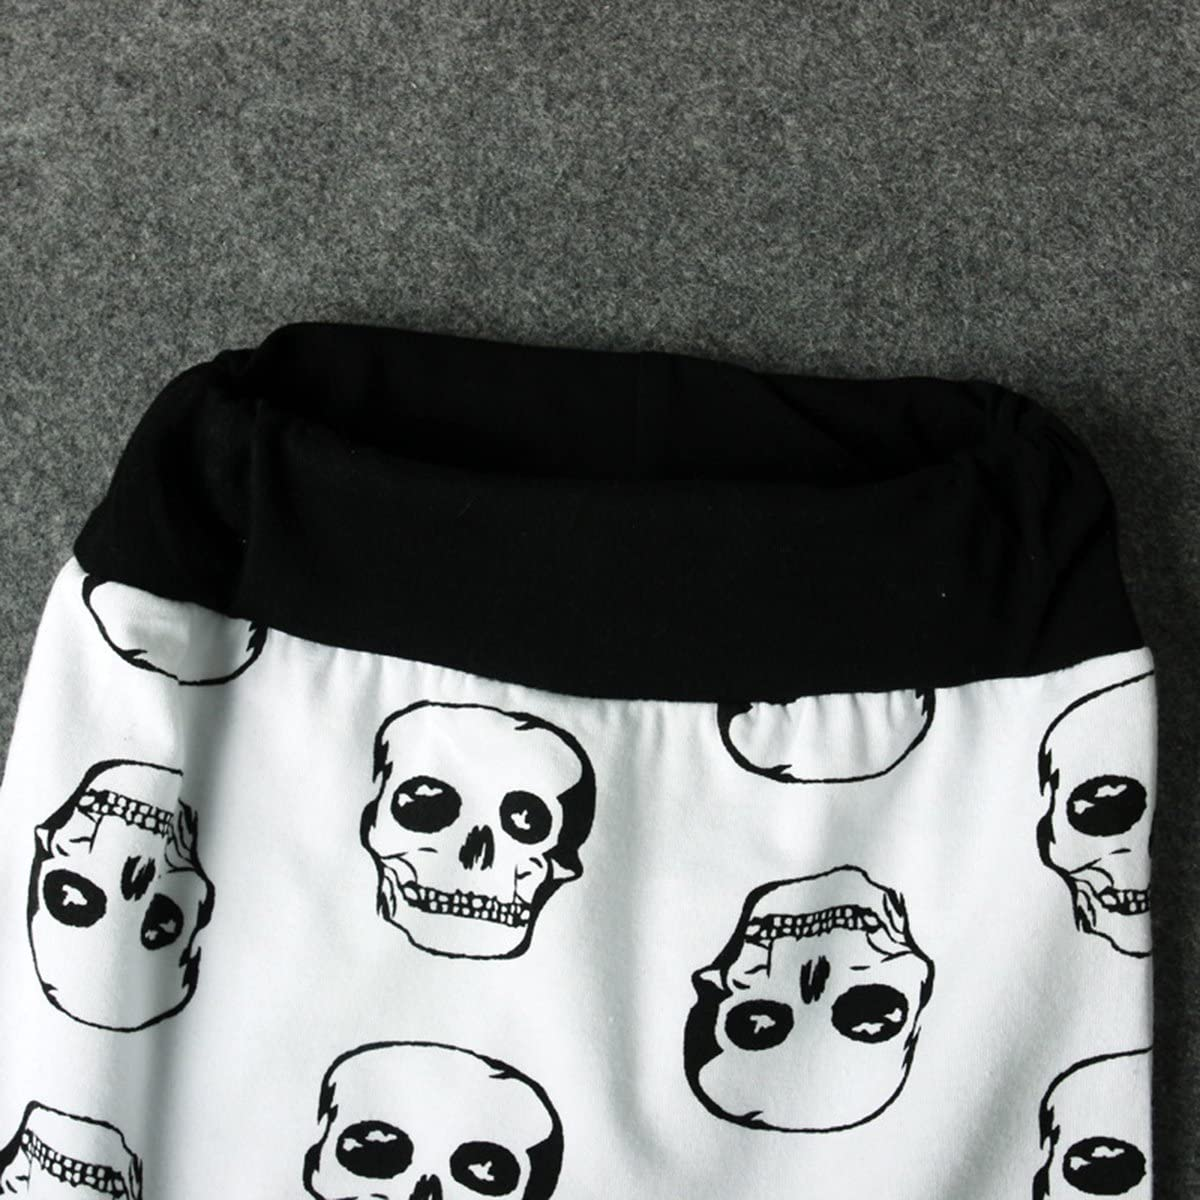 greatmtx Newborn Baby Boy Clothes Outfits Skull Print Romper+Pants Clothing Set for 0-24 Months